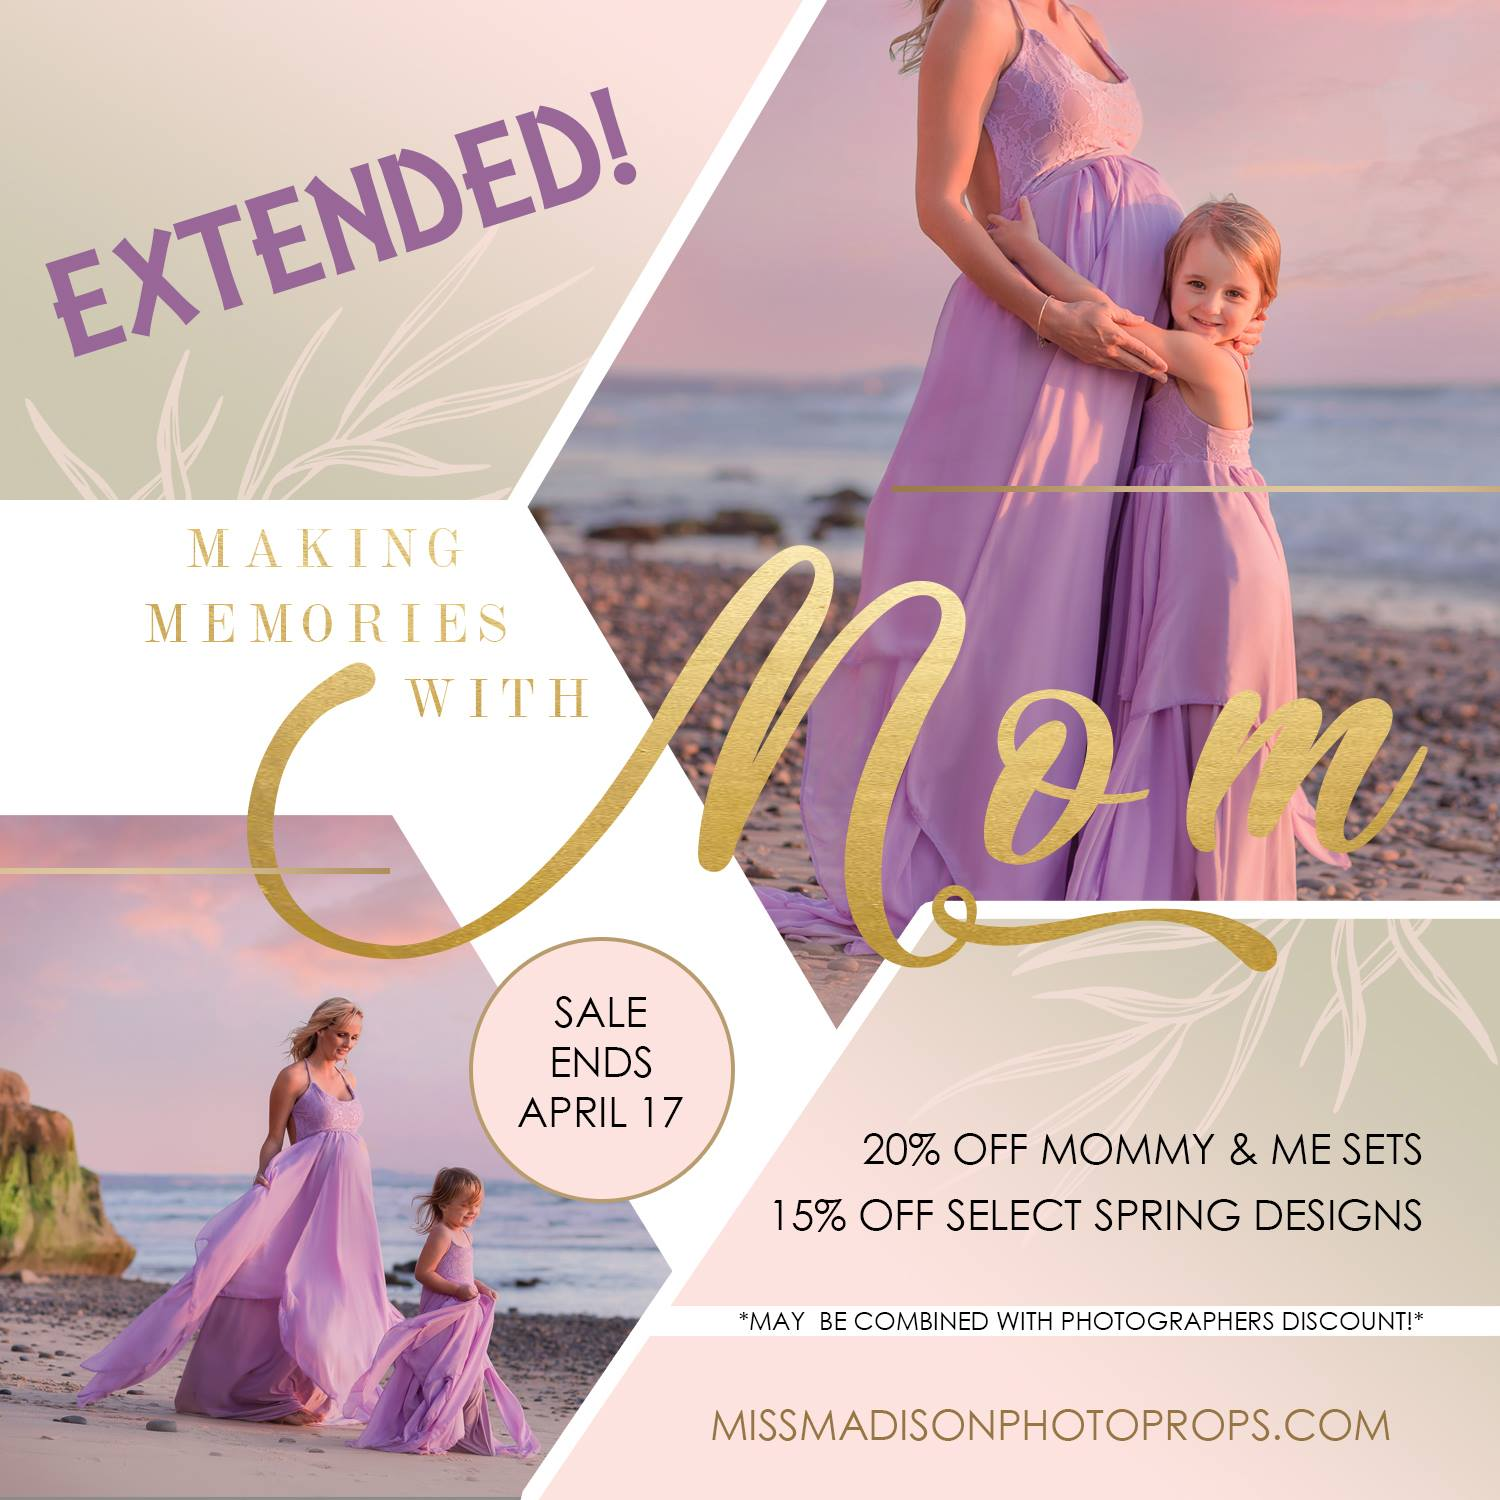 Mother's Day Sale extended, making Memories with Mom